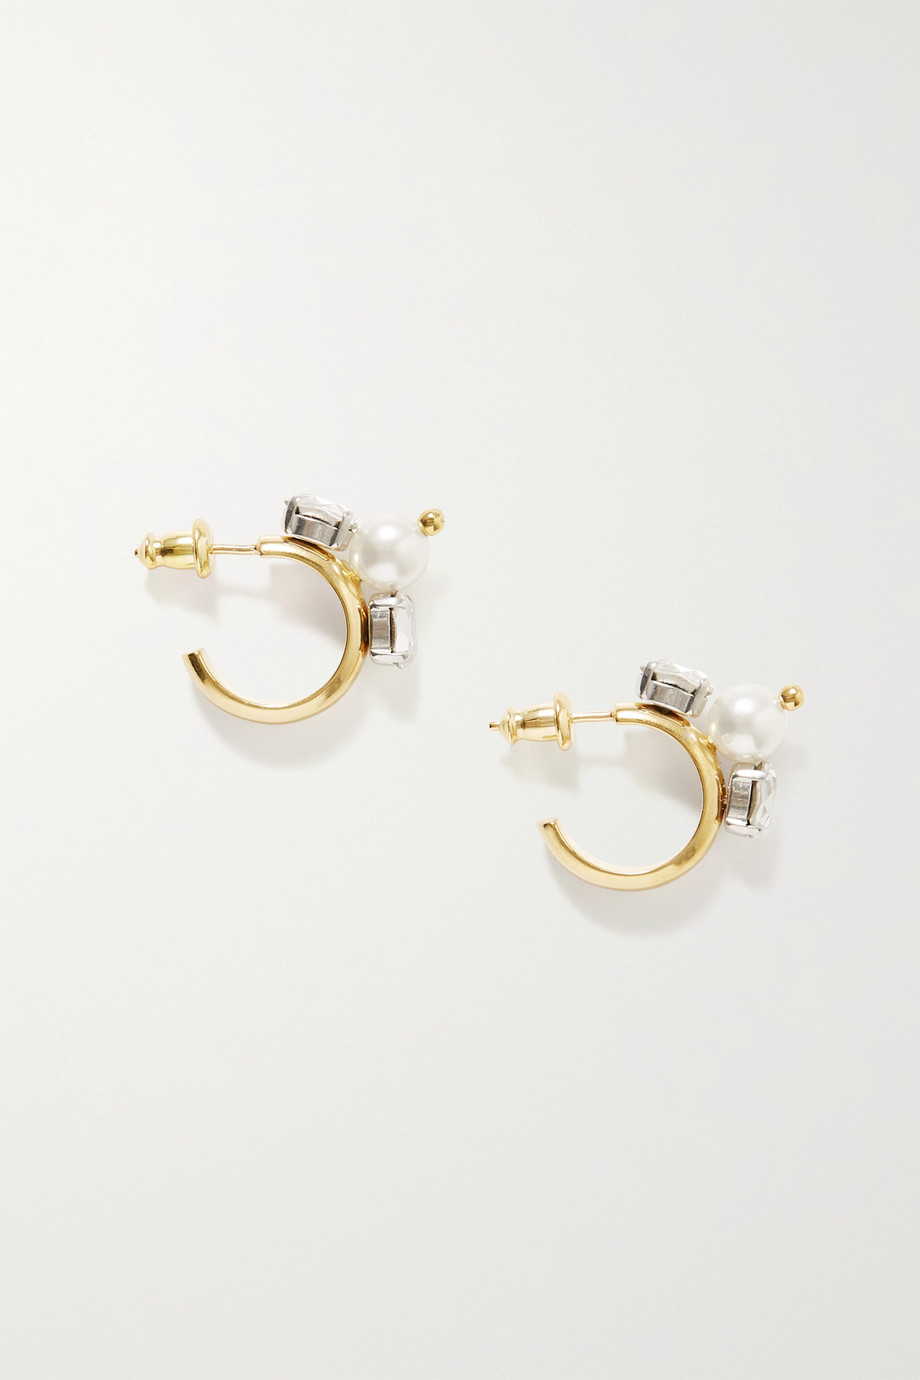 Simone Rocha Gold-tone, crystal and faux pearl hoop earrings